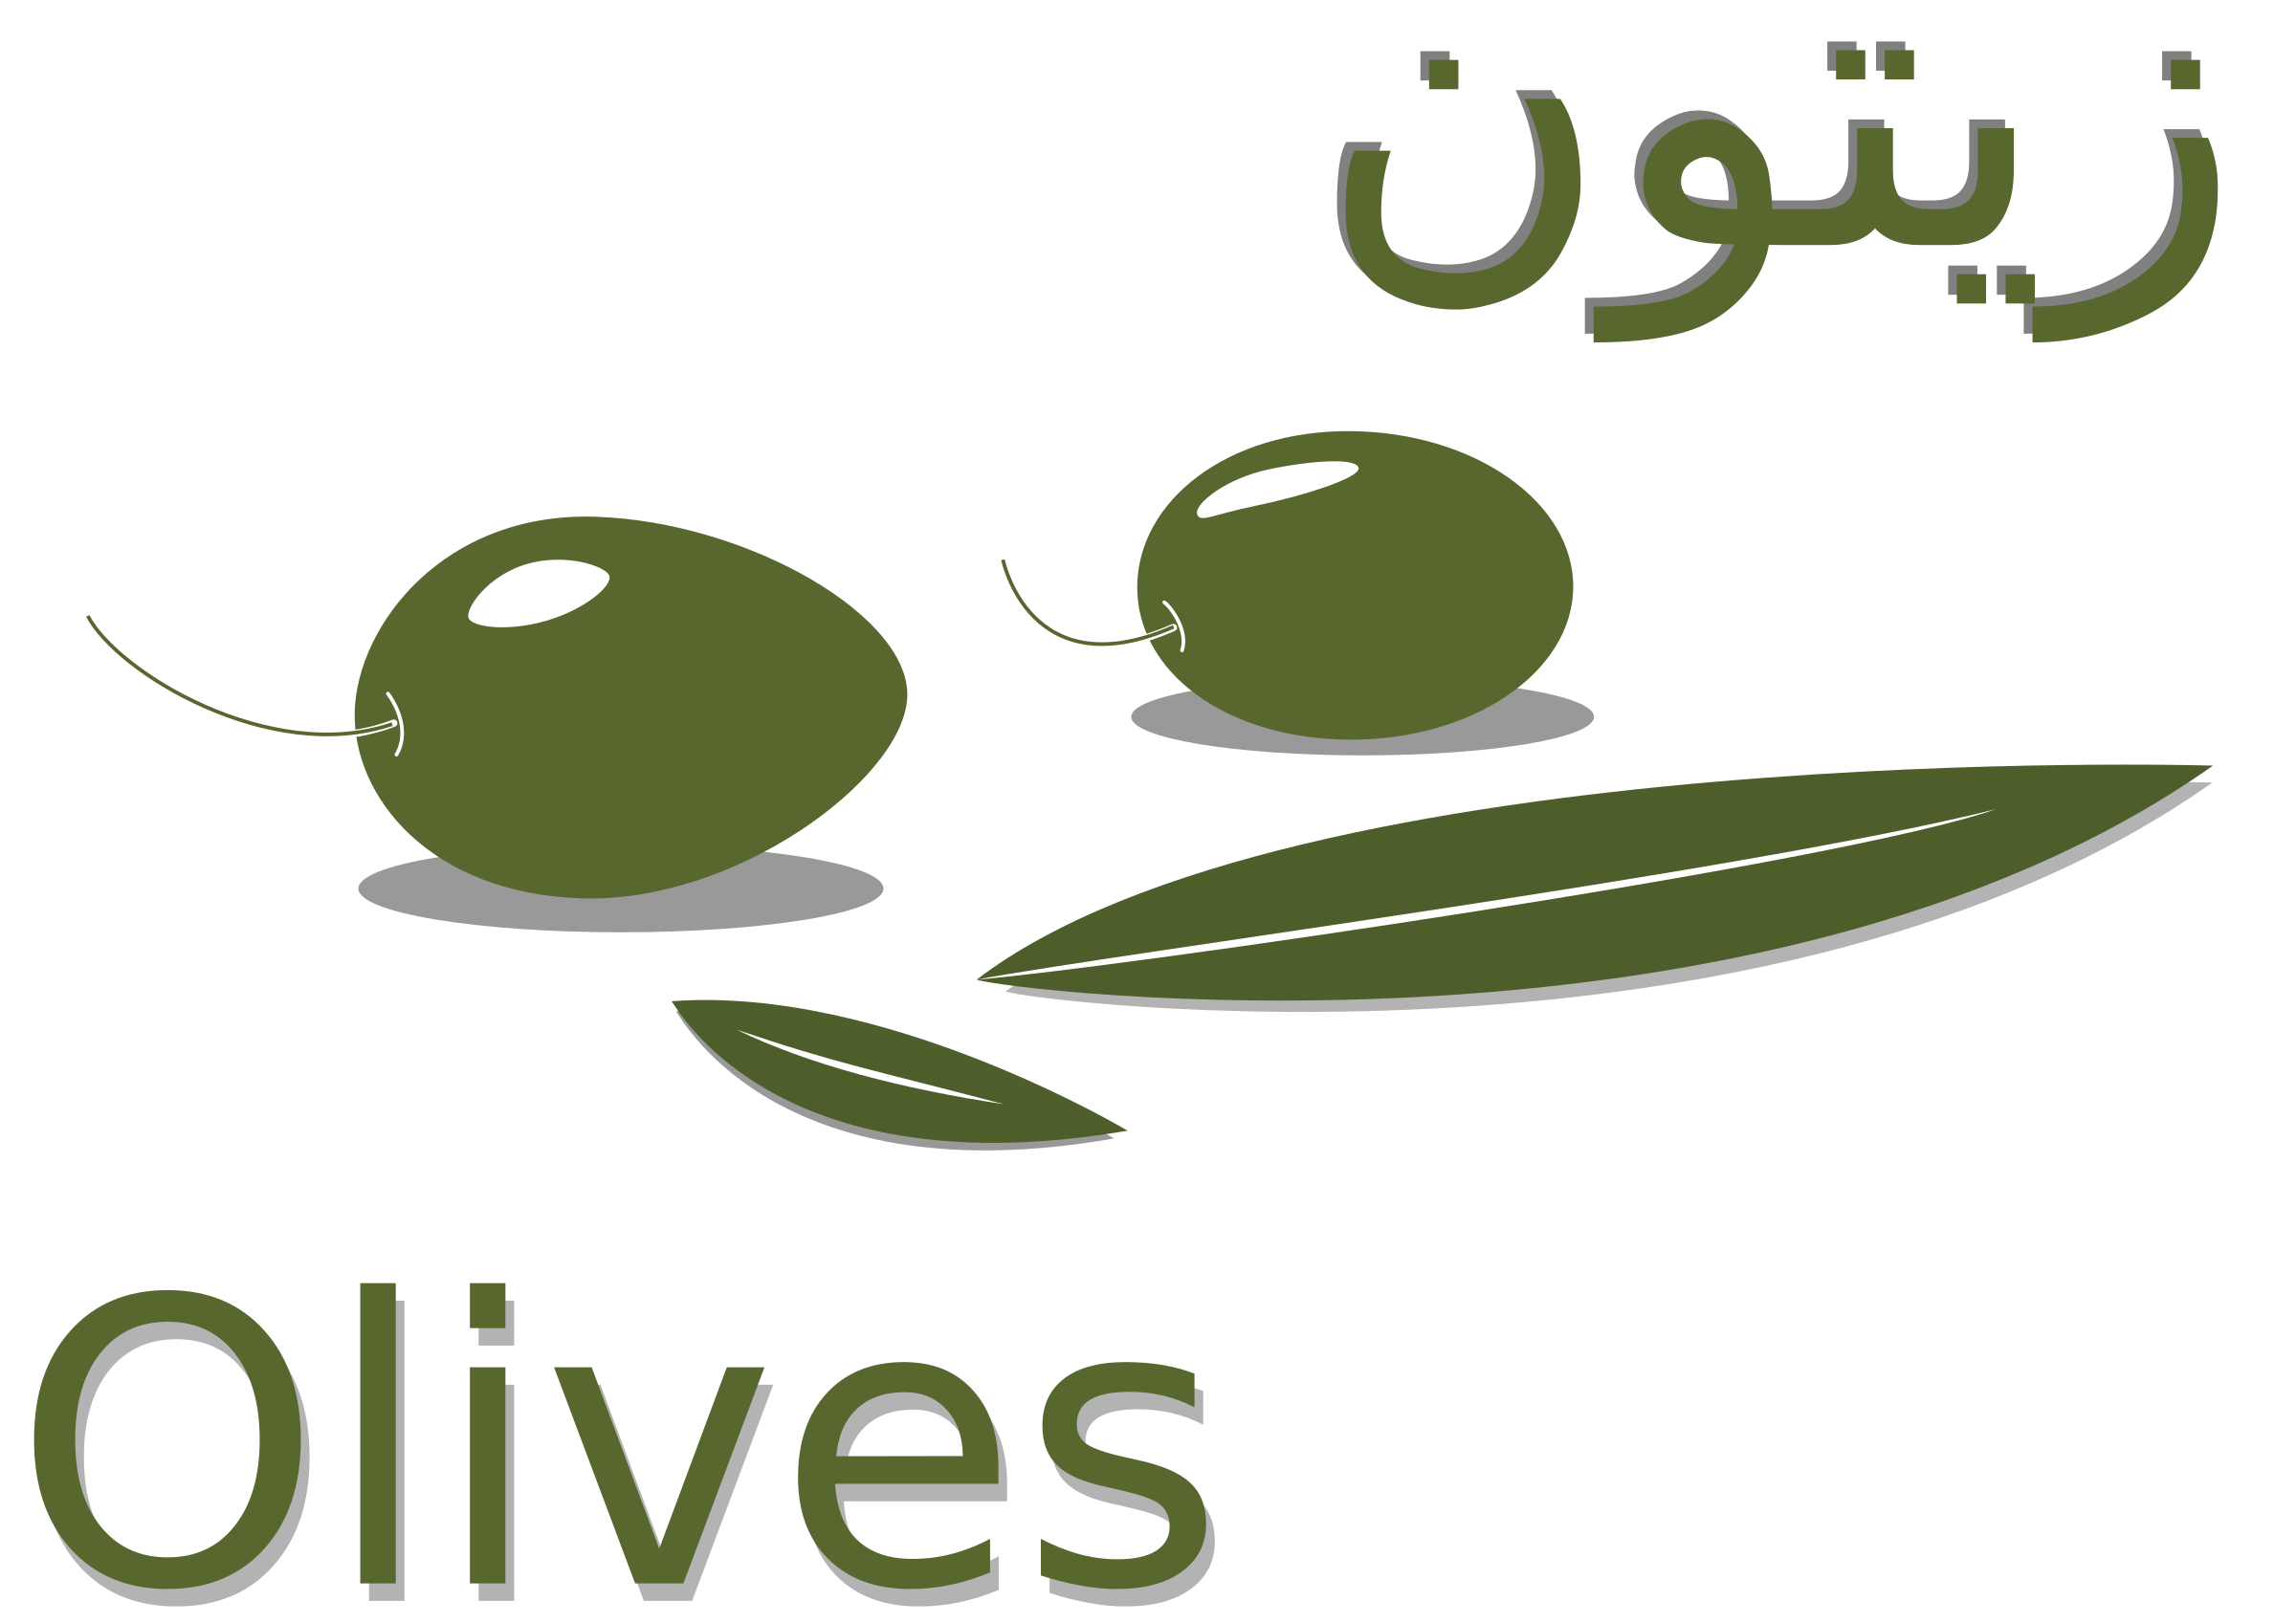 Olive - زيتون by mounir.boukhari